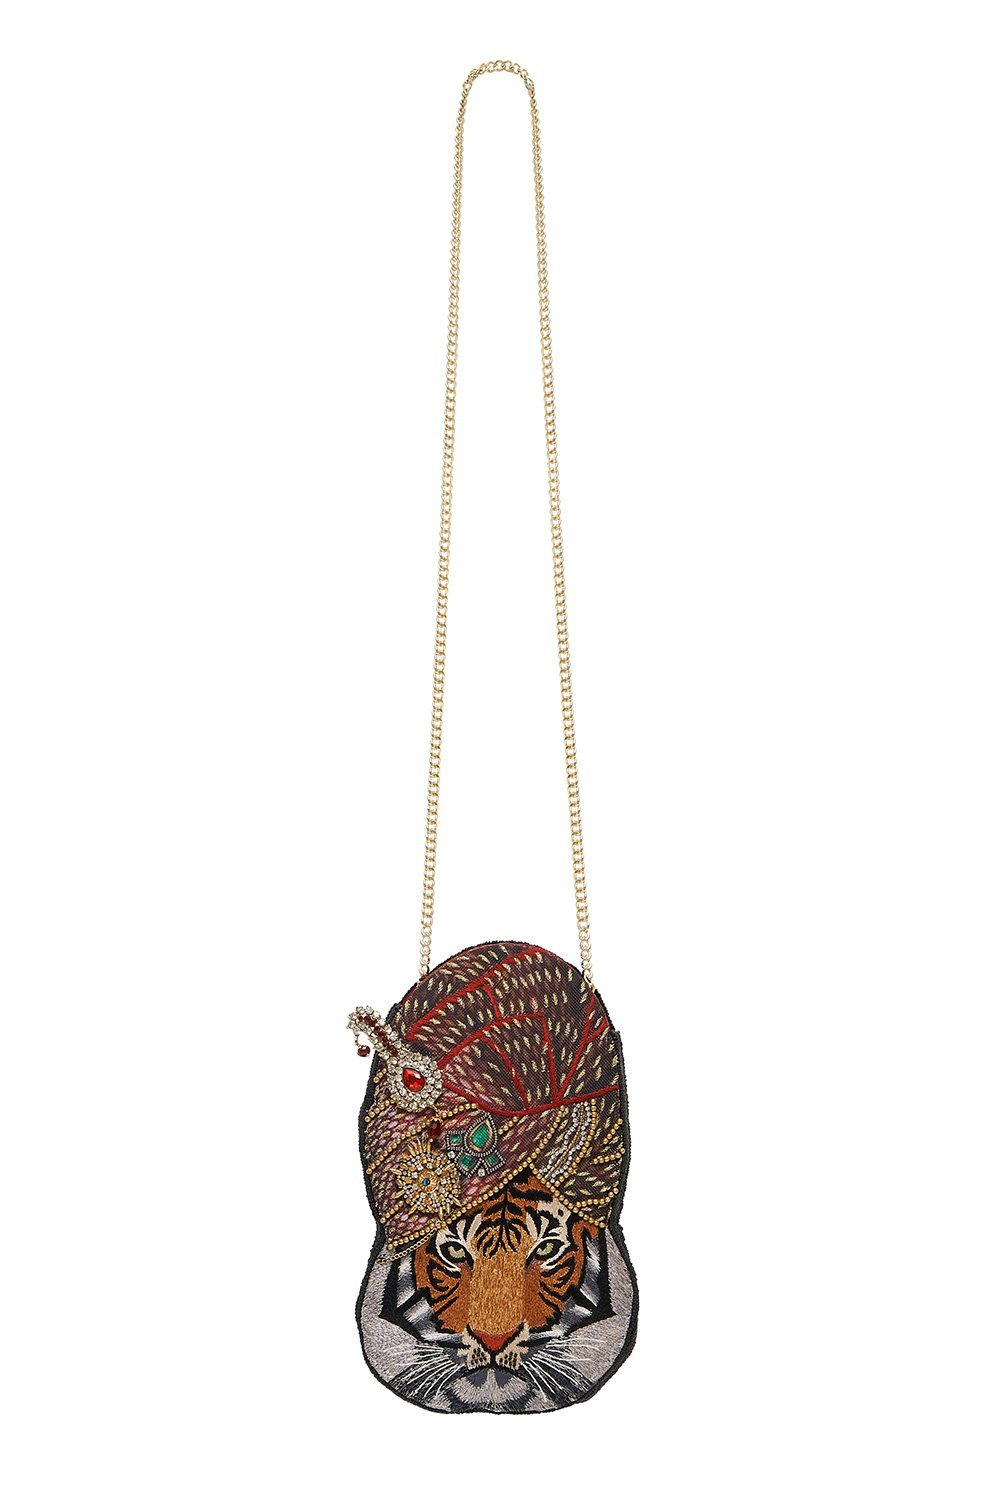 TIGER TURBAN BAG SOLID BLACK